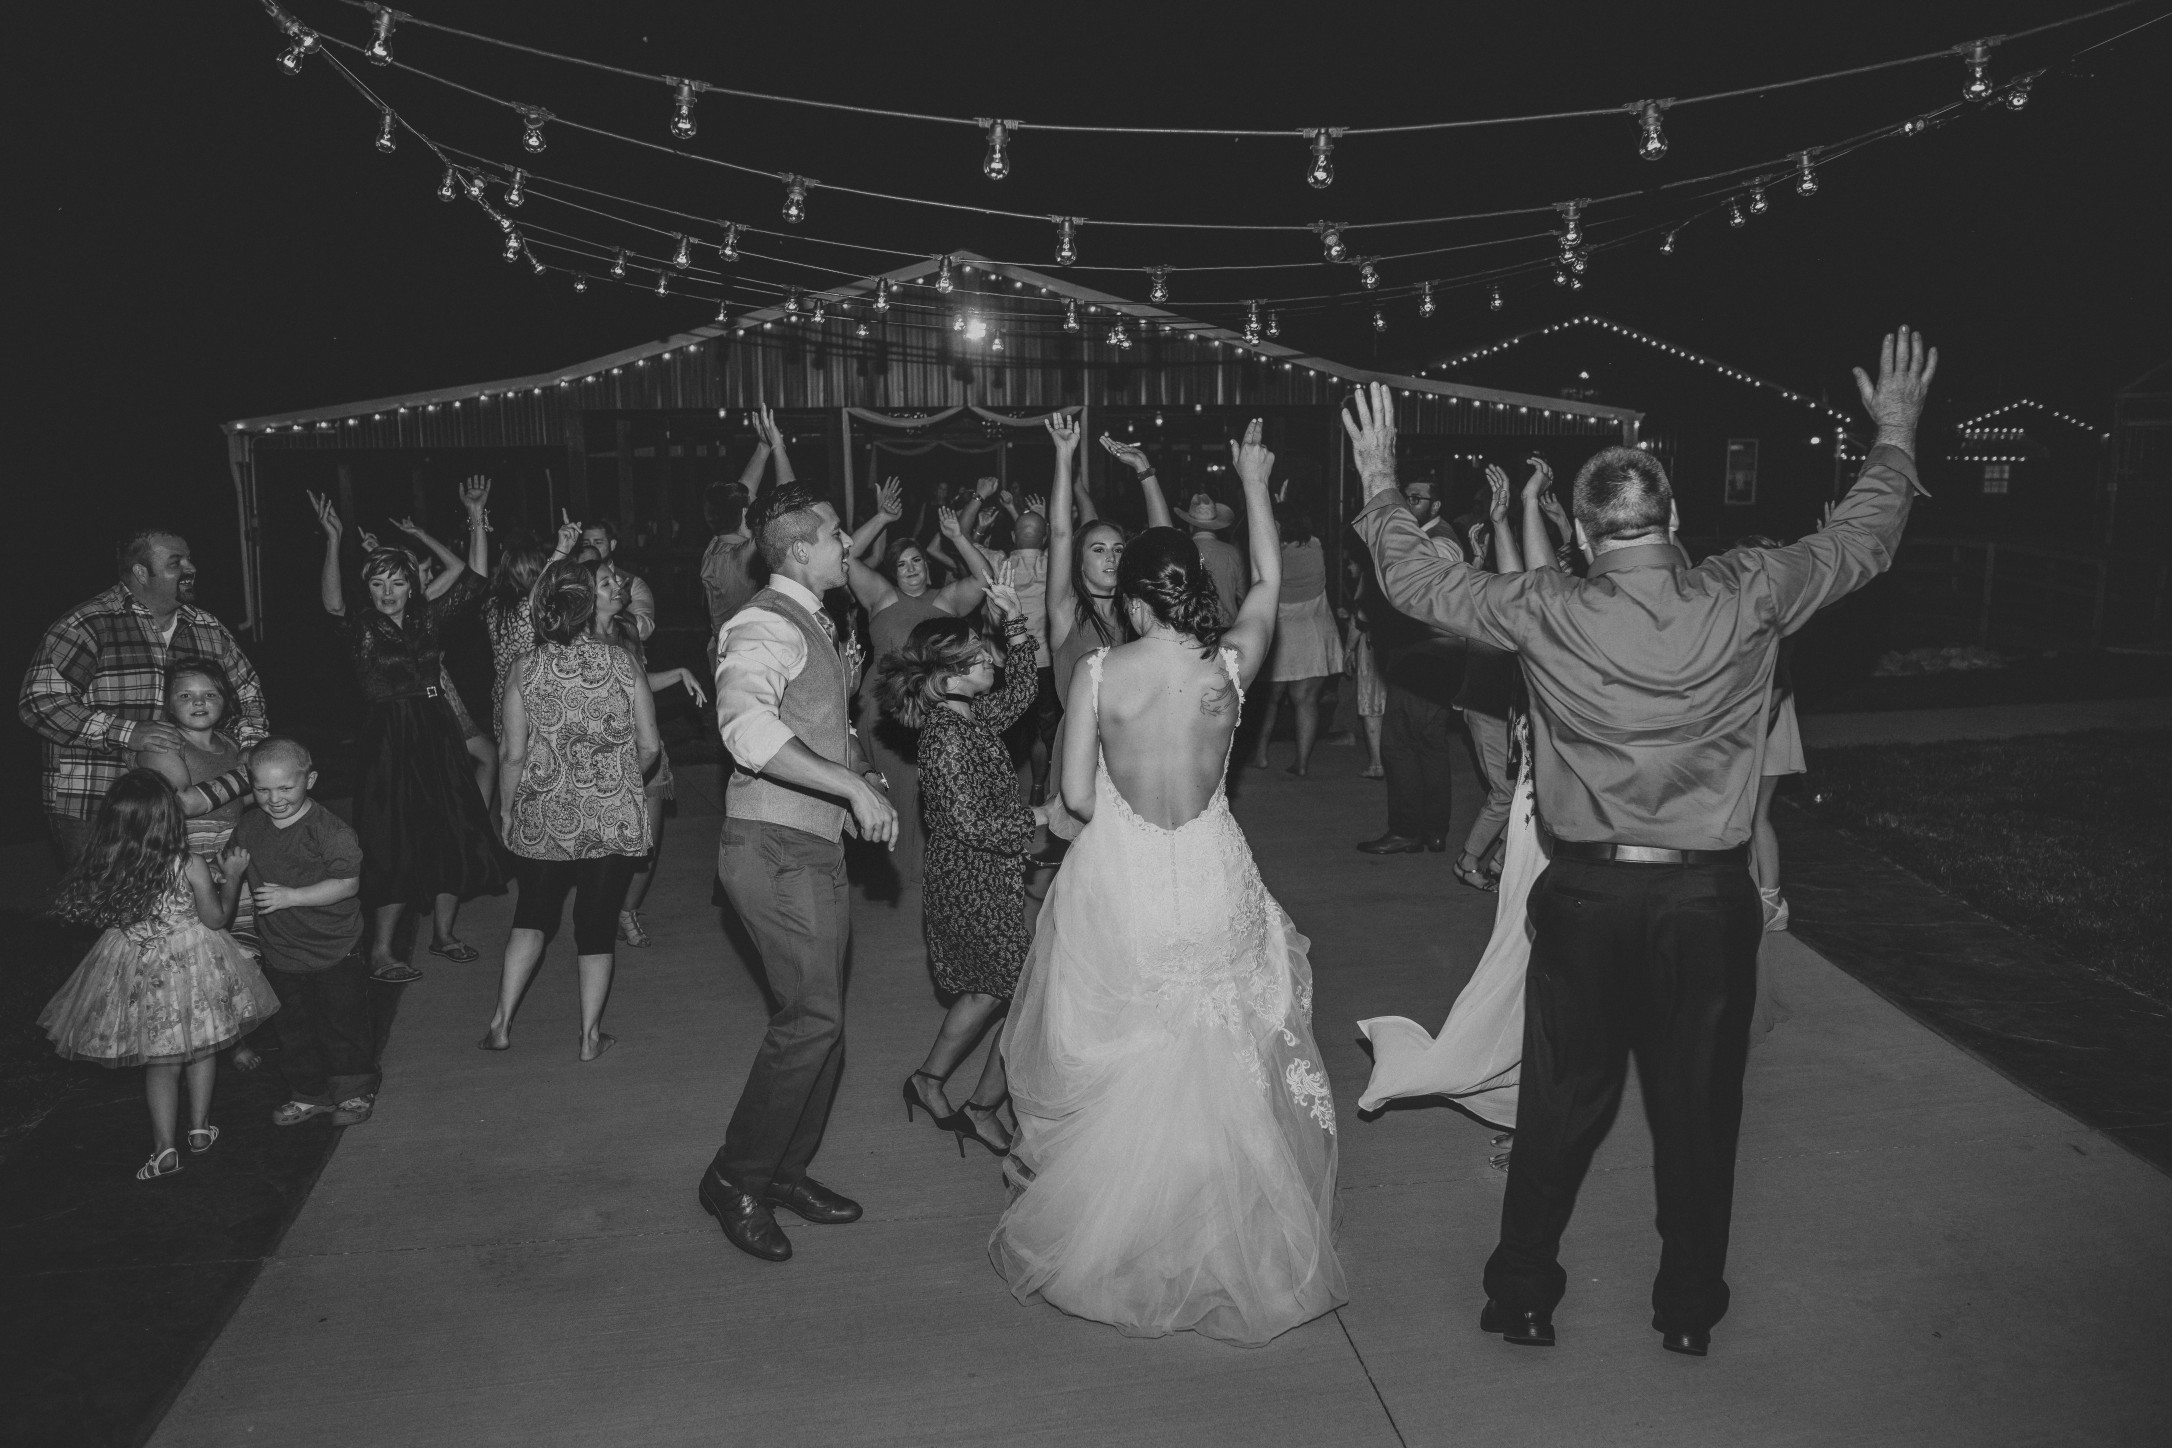 dancing at wedding reception venue - Faulkner's Ranch